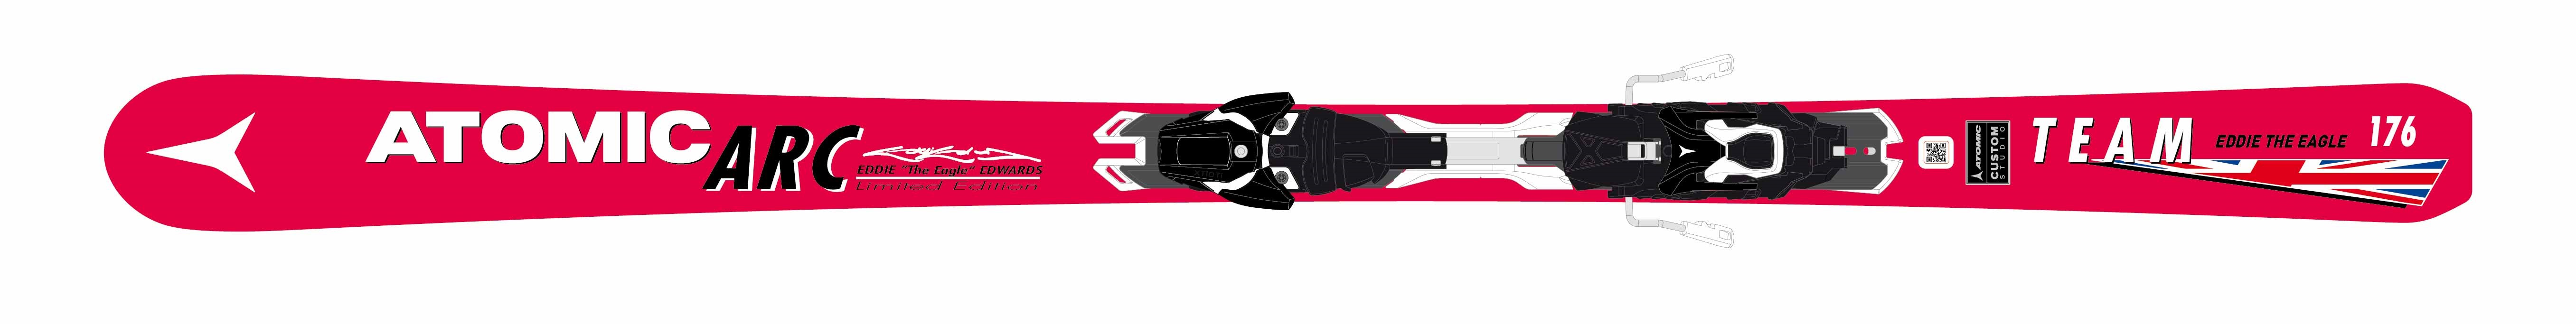 The new ARC ski, based on the Redster Xti